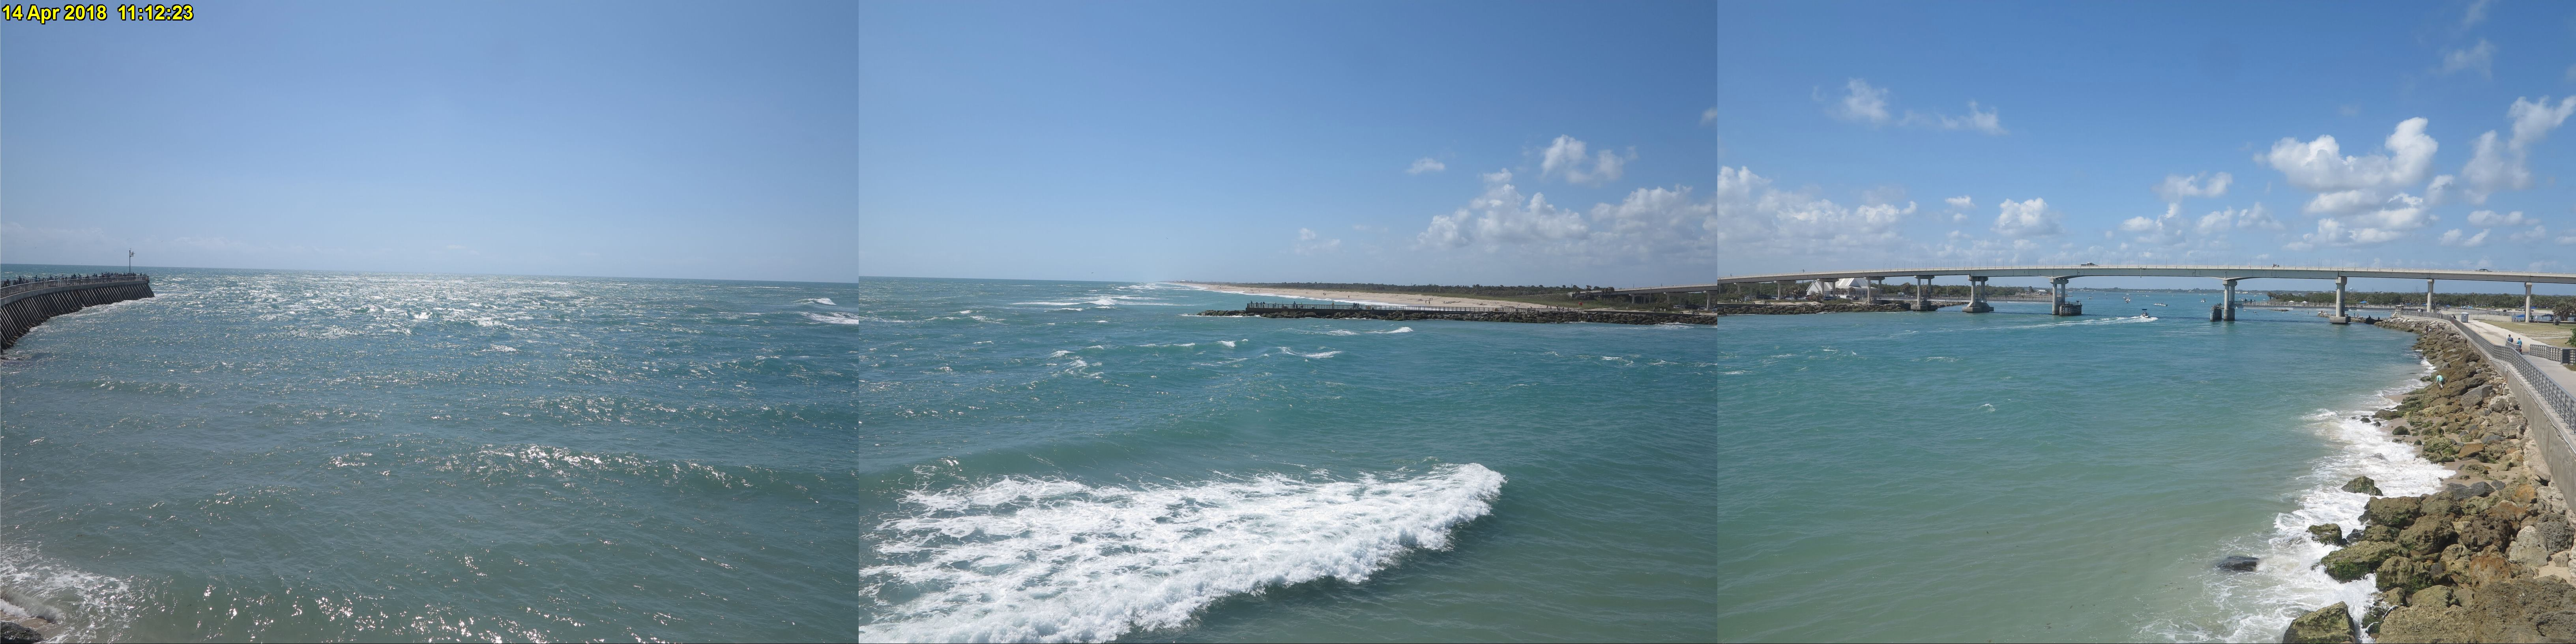 Sebastian inlet webcam panorama looking south and west geenschuldenfo Images